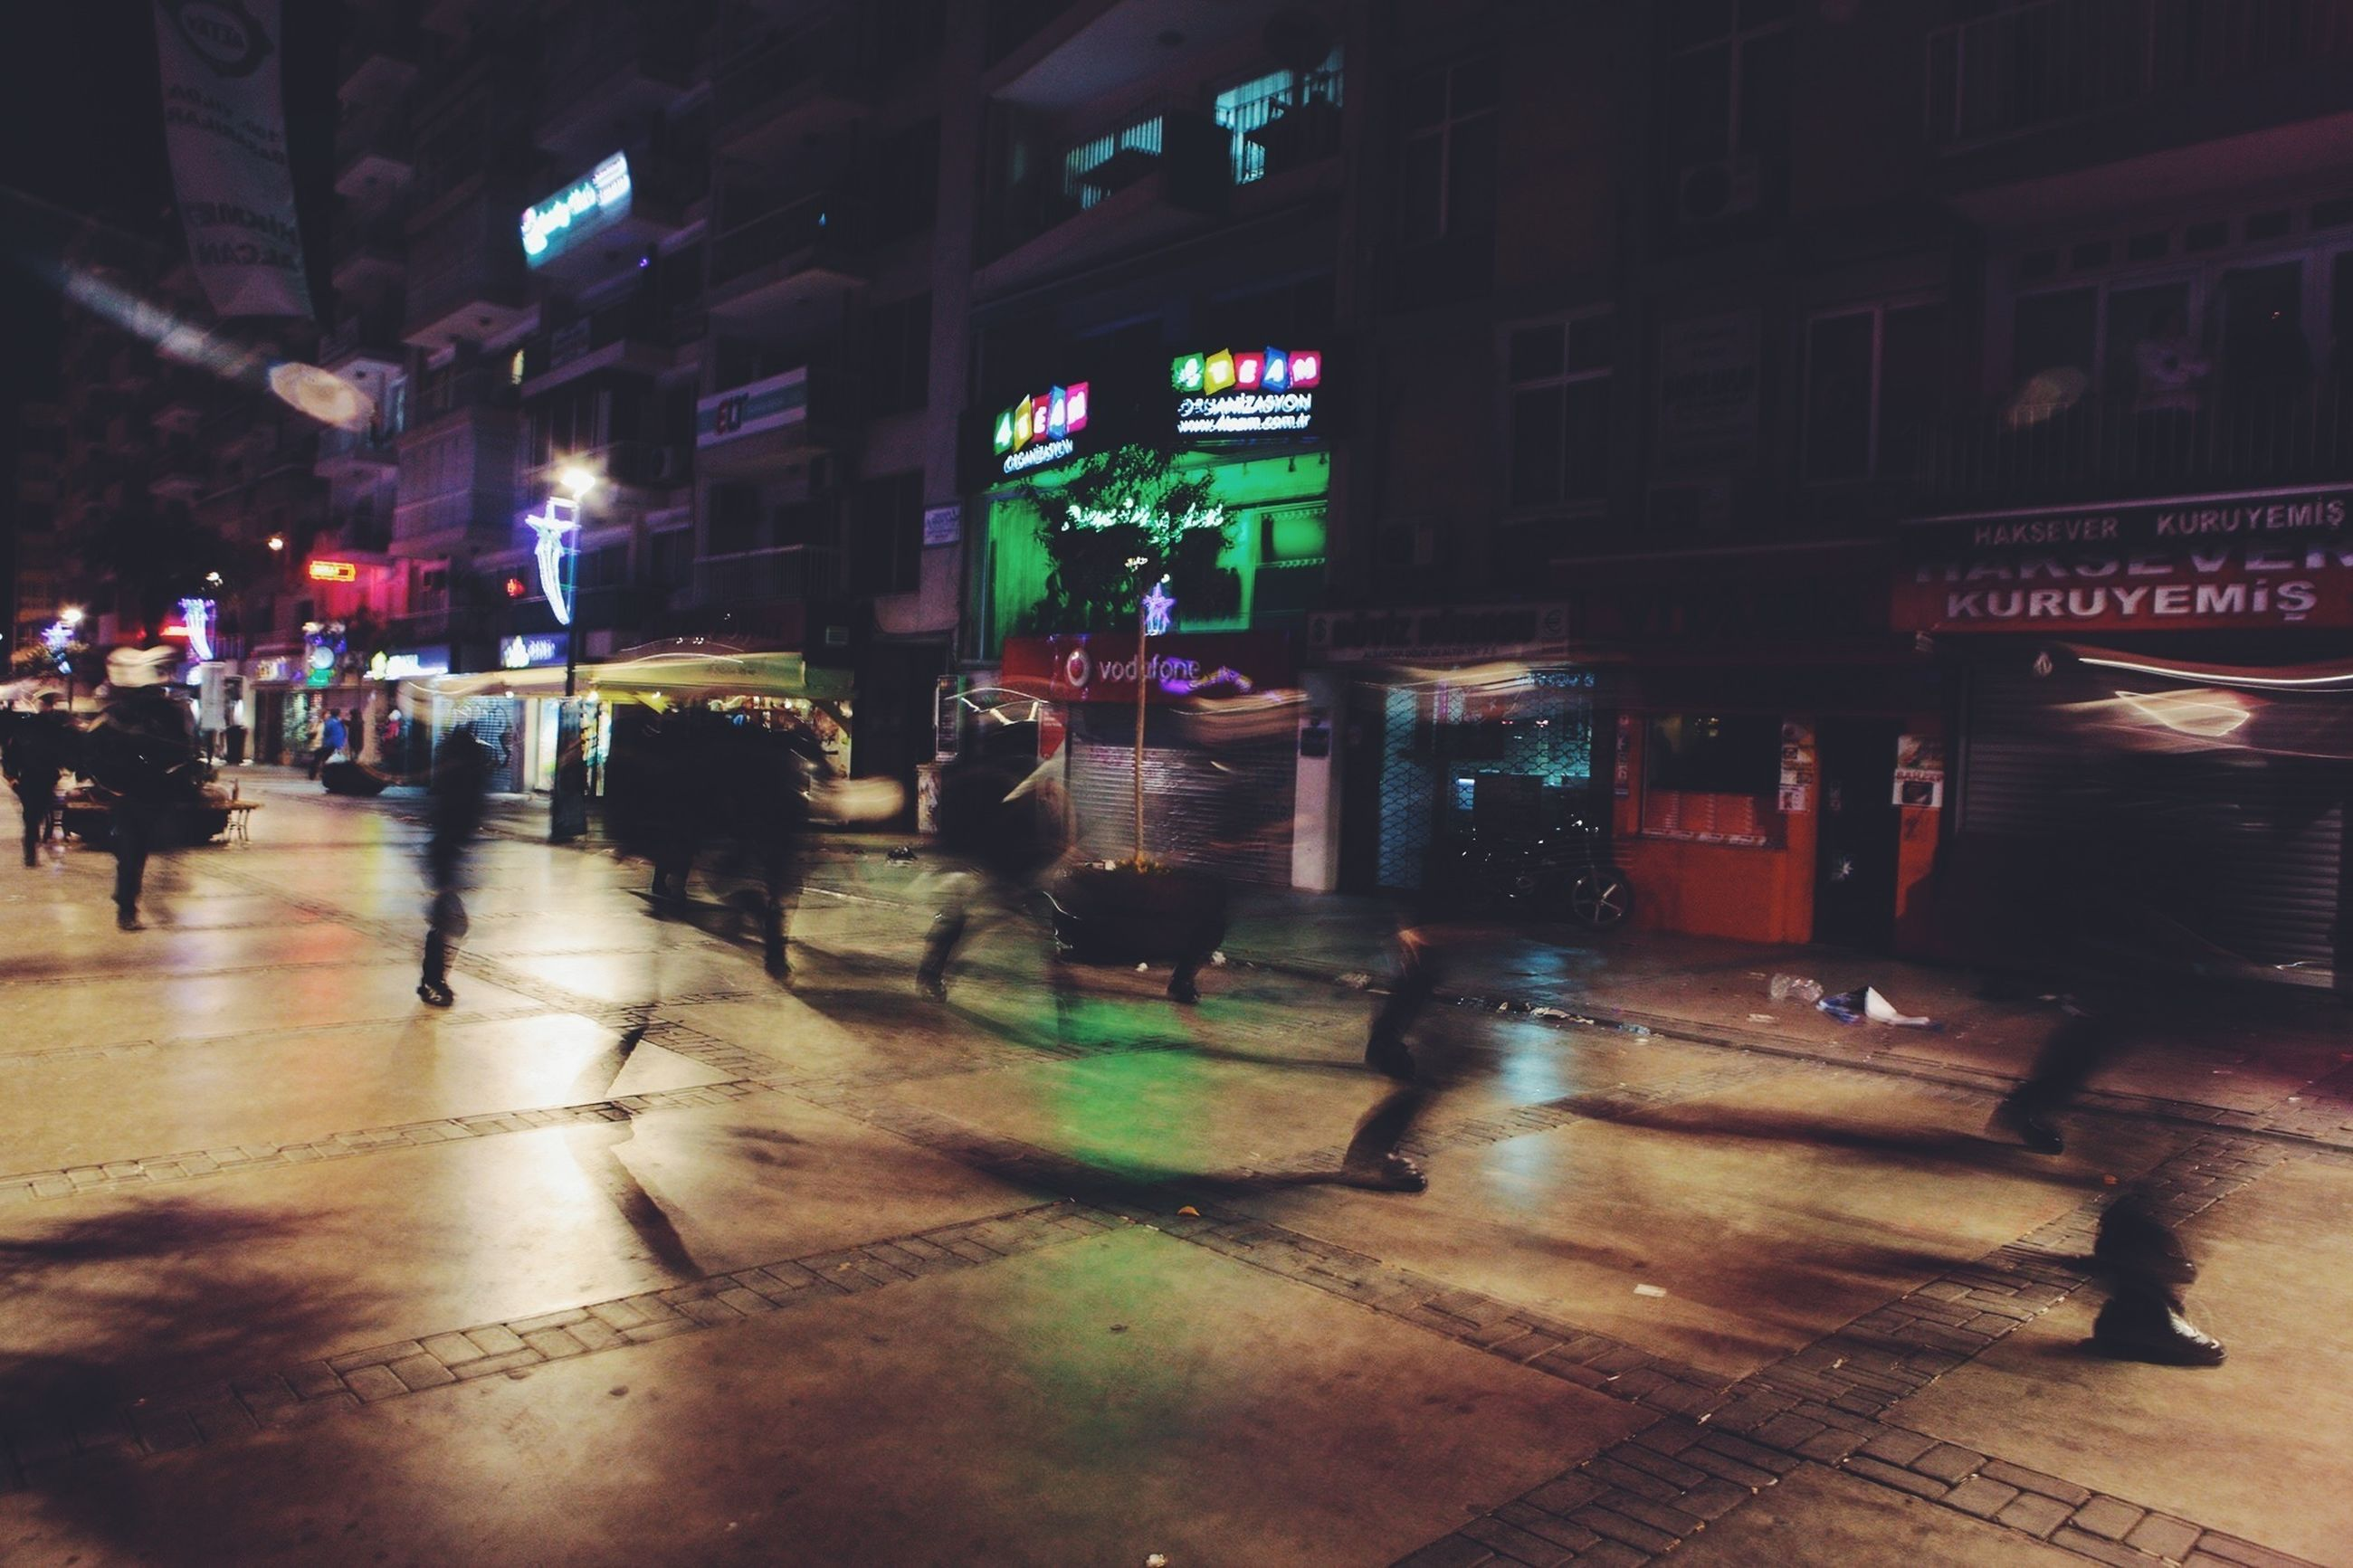 illuminated, night, city, city life, building exterior, street, architecture, built structure, transportation, large group of people, city street, person, men, walking, car, land vehicle, incidental people, road, lifestyles